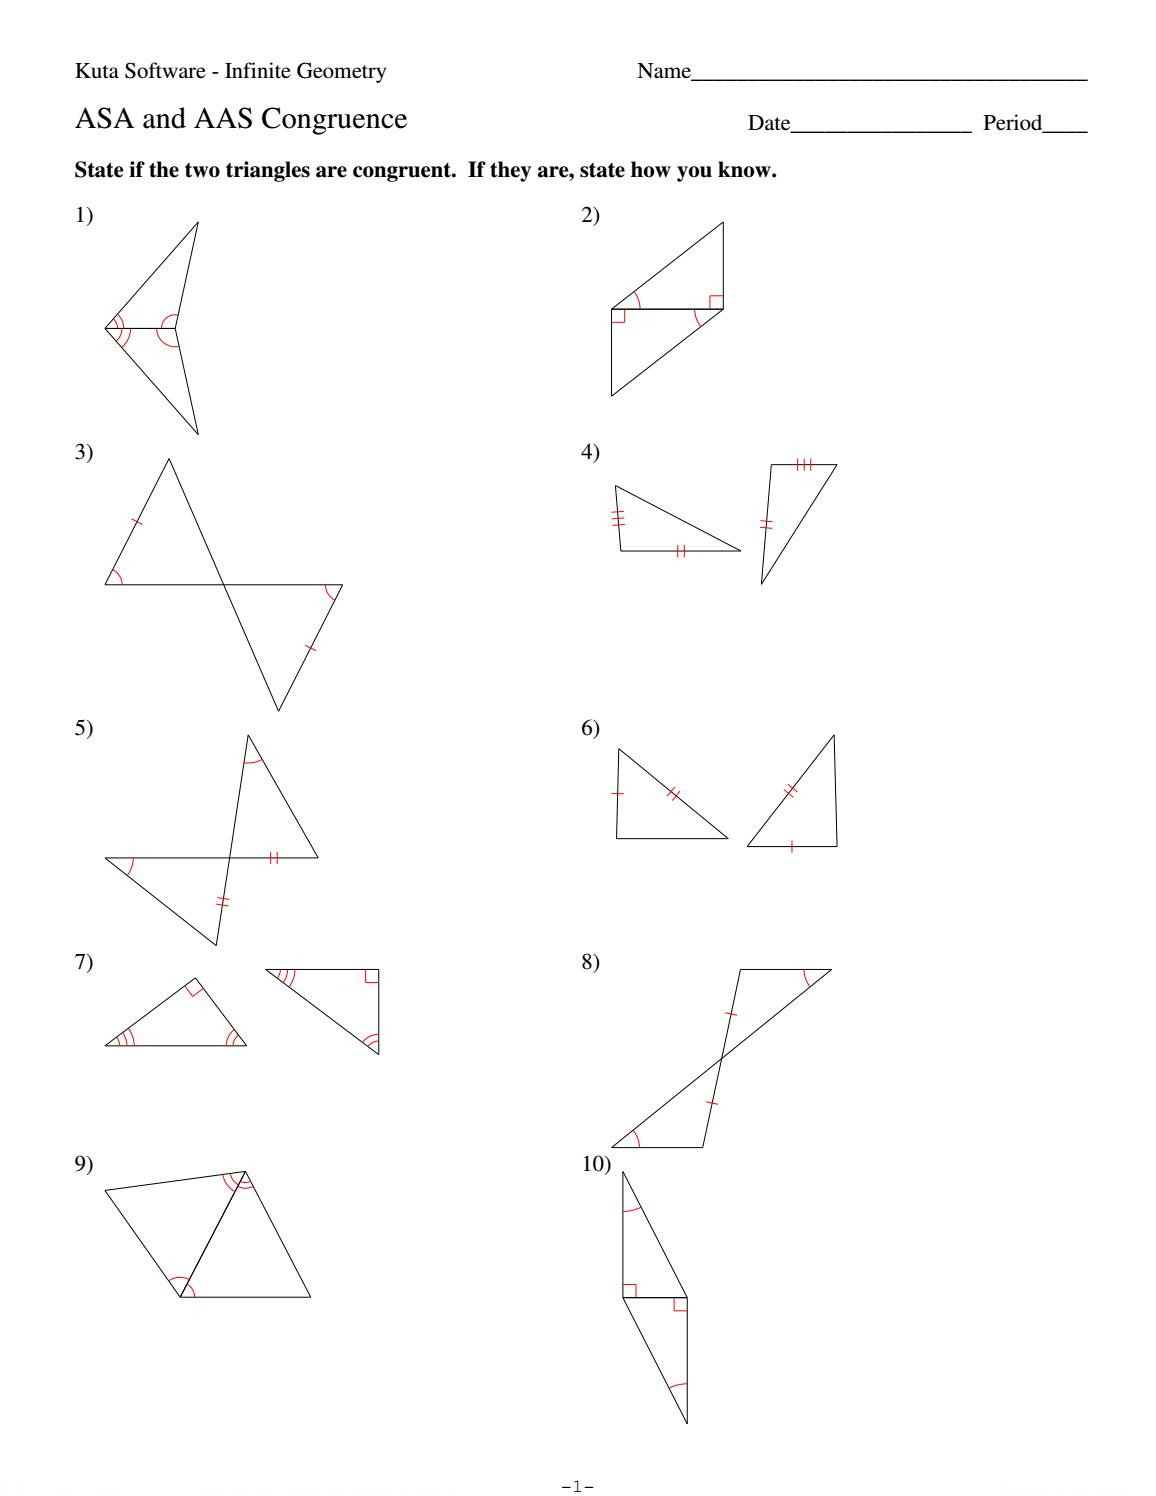 Triangle Congruence Worksheet Answer Key 4 asa and Aas Congruence by Hhs Geometry issuu